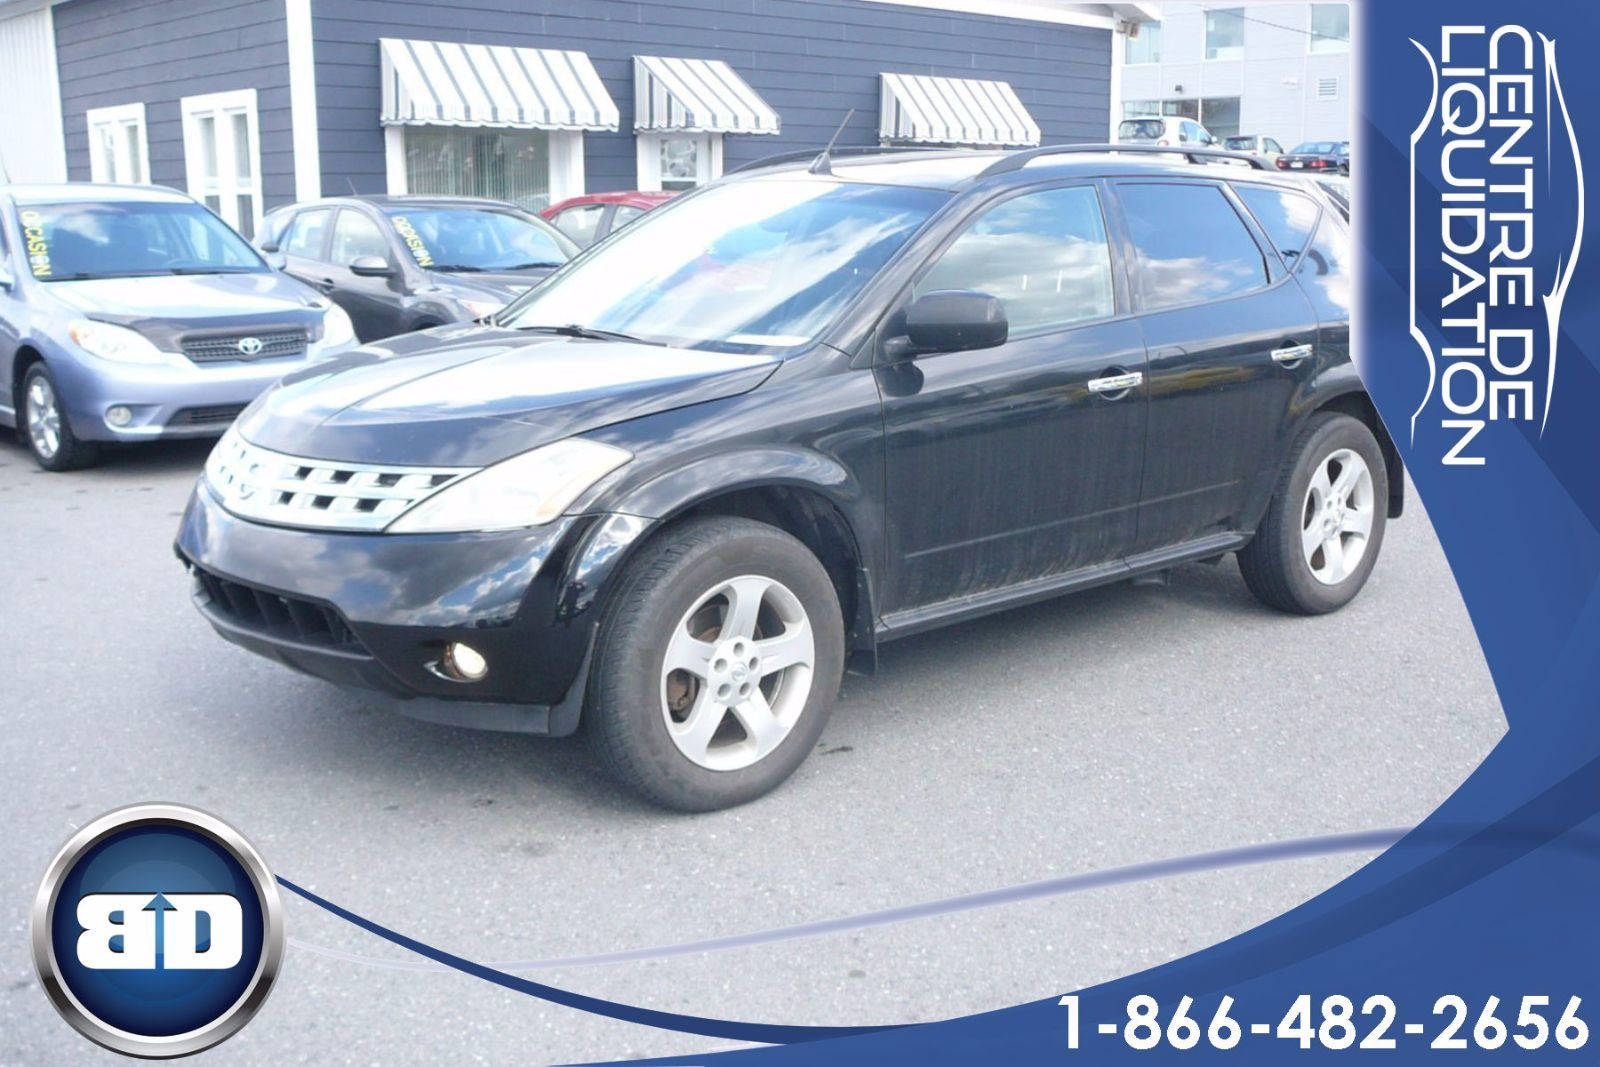 hight resolution of used 2004 nissan murano sl awd in granby used inventory centre de liquidation bd in granby quebec